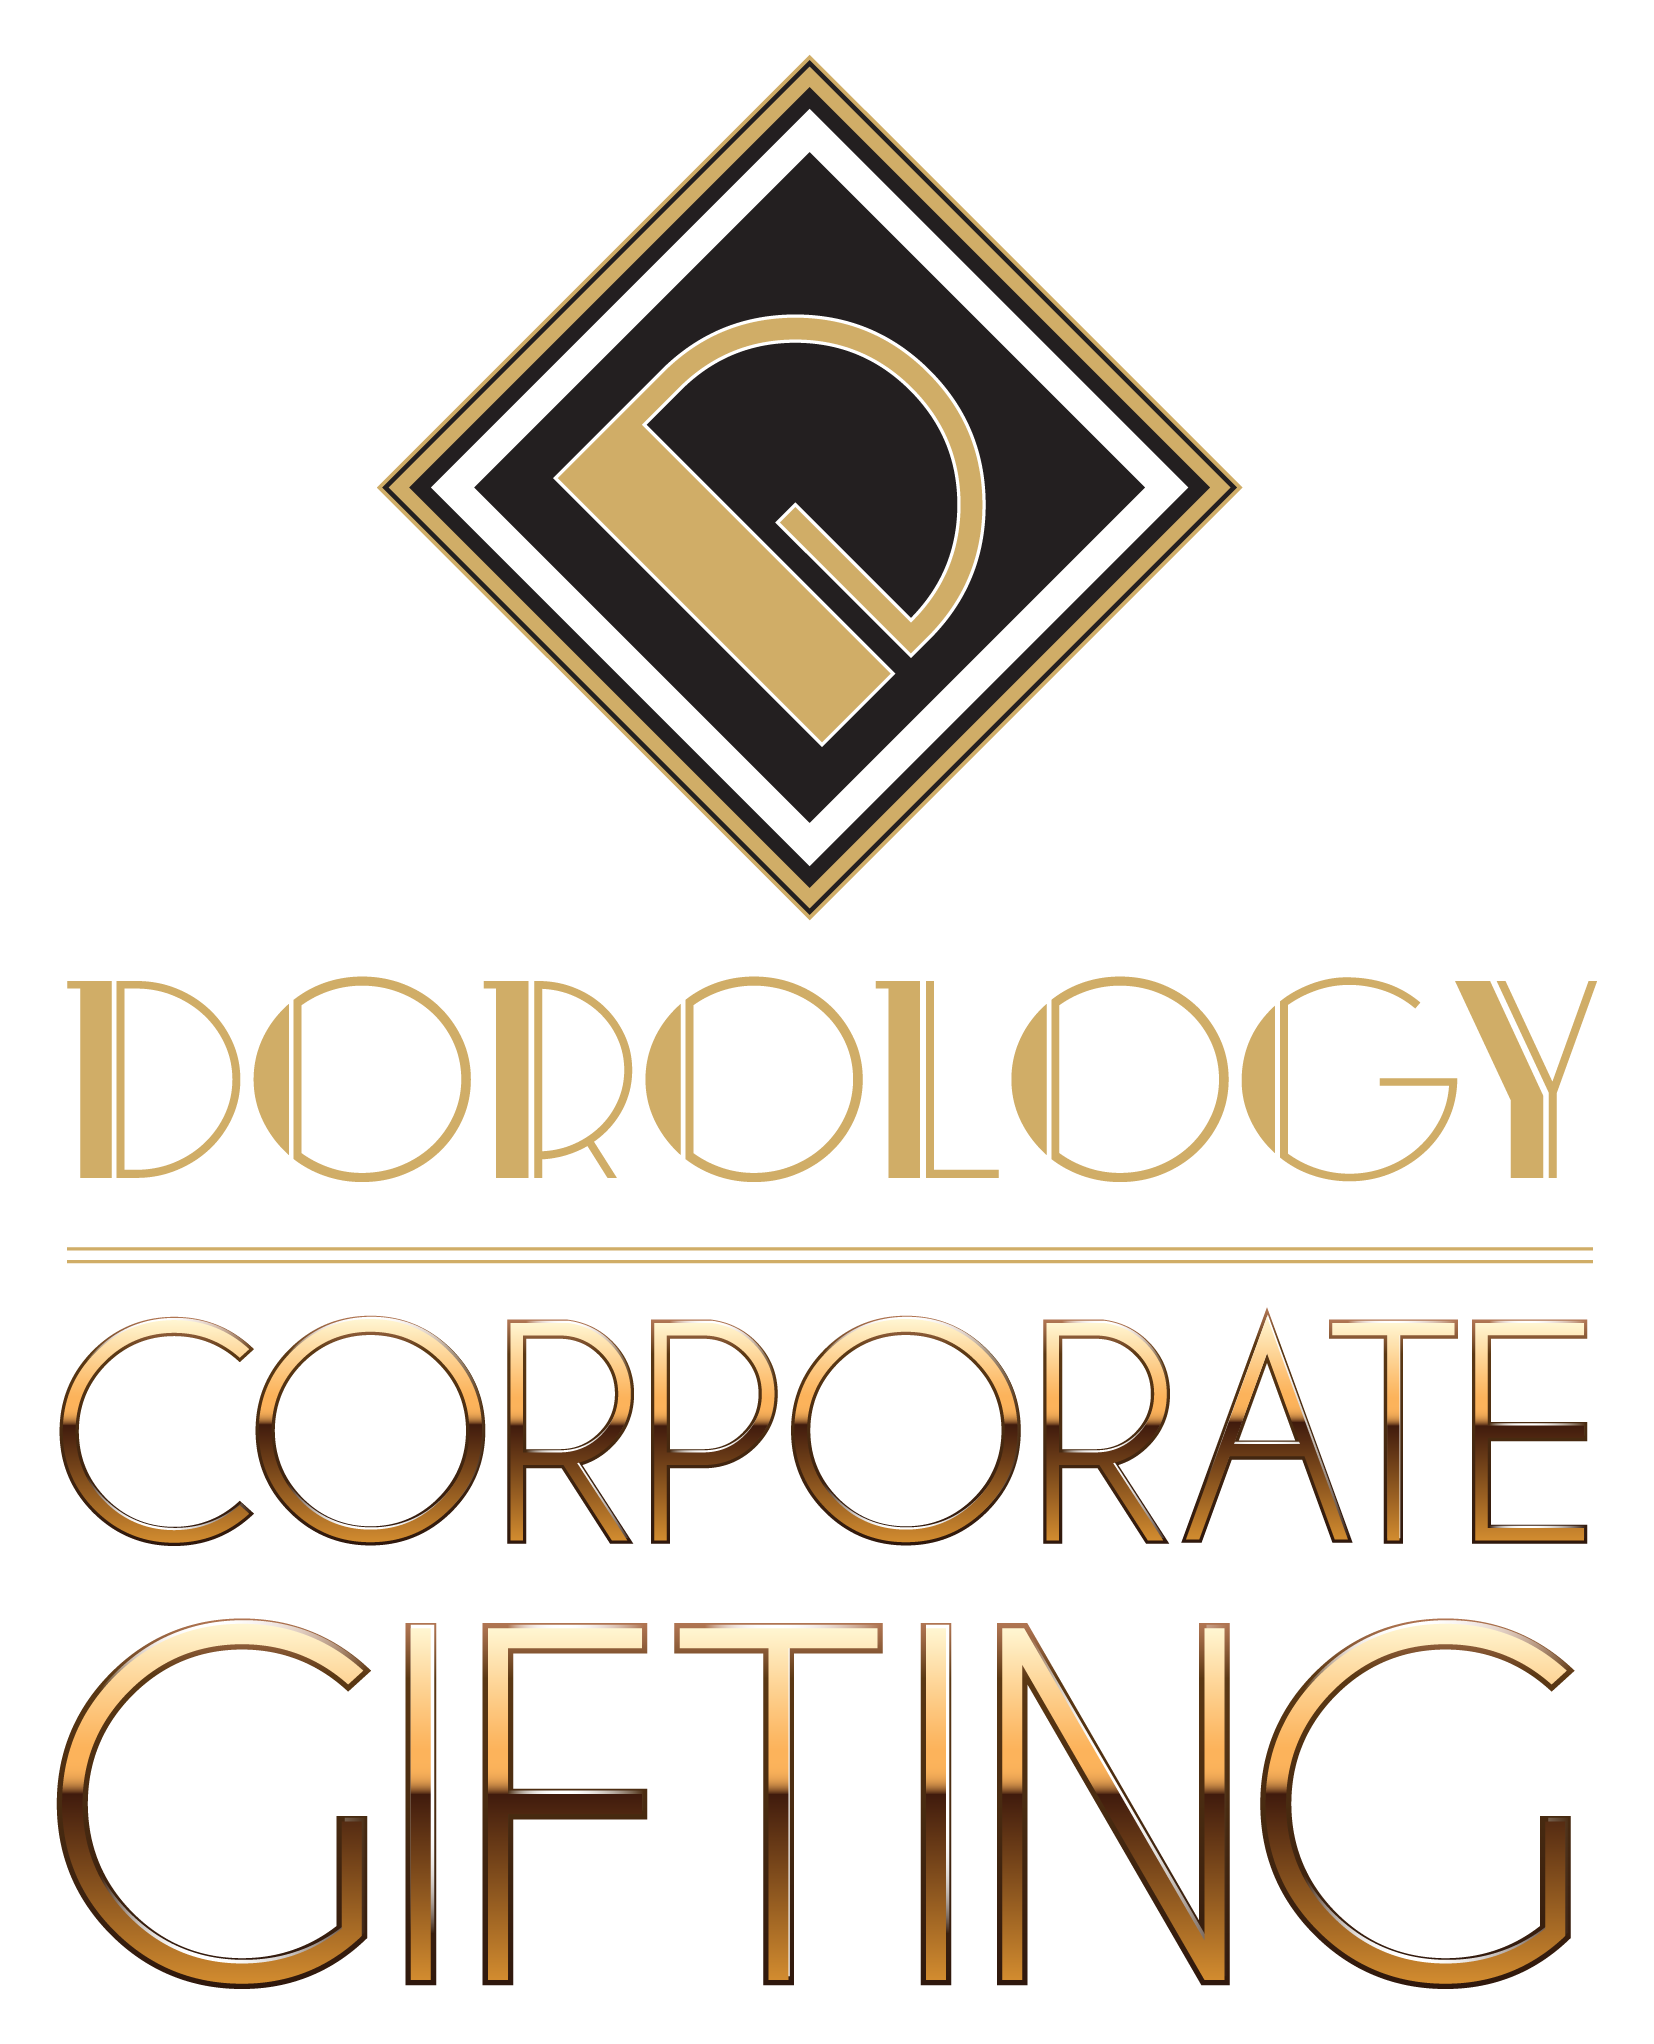 Corporate Gifts Concierge | Dorology - the art of gifting